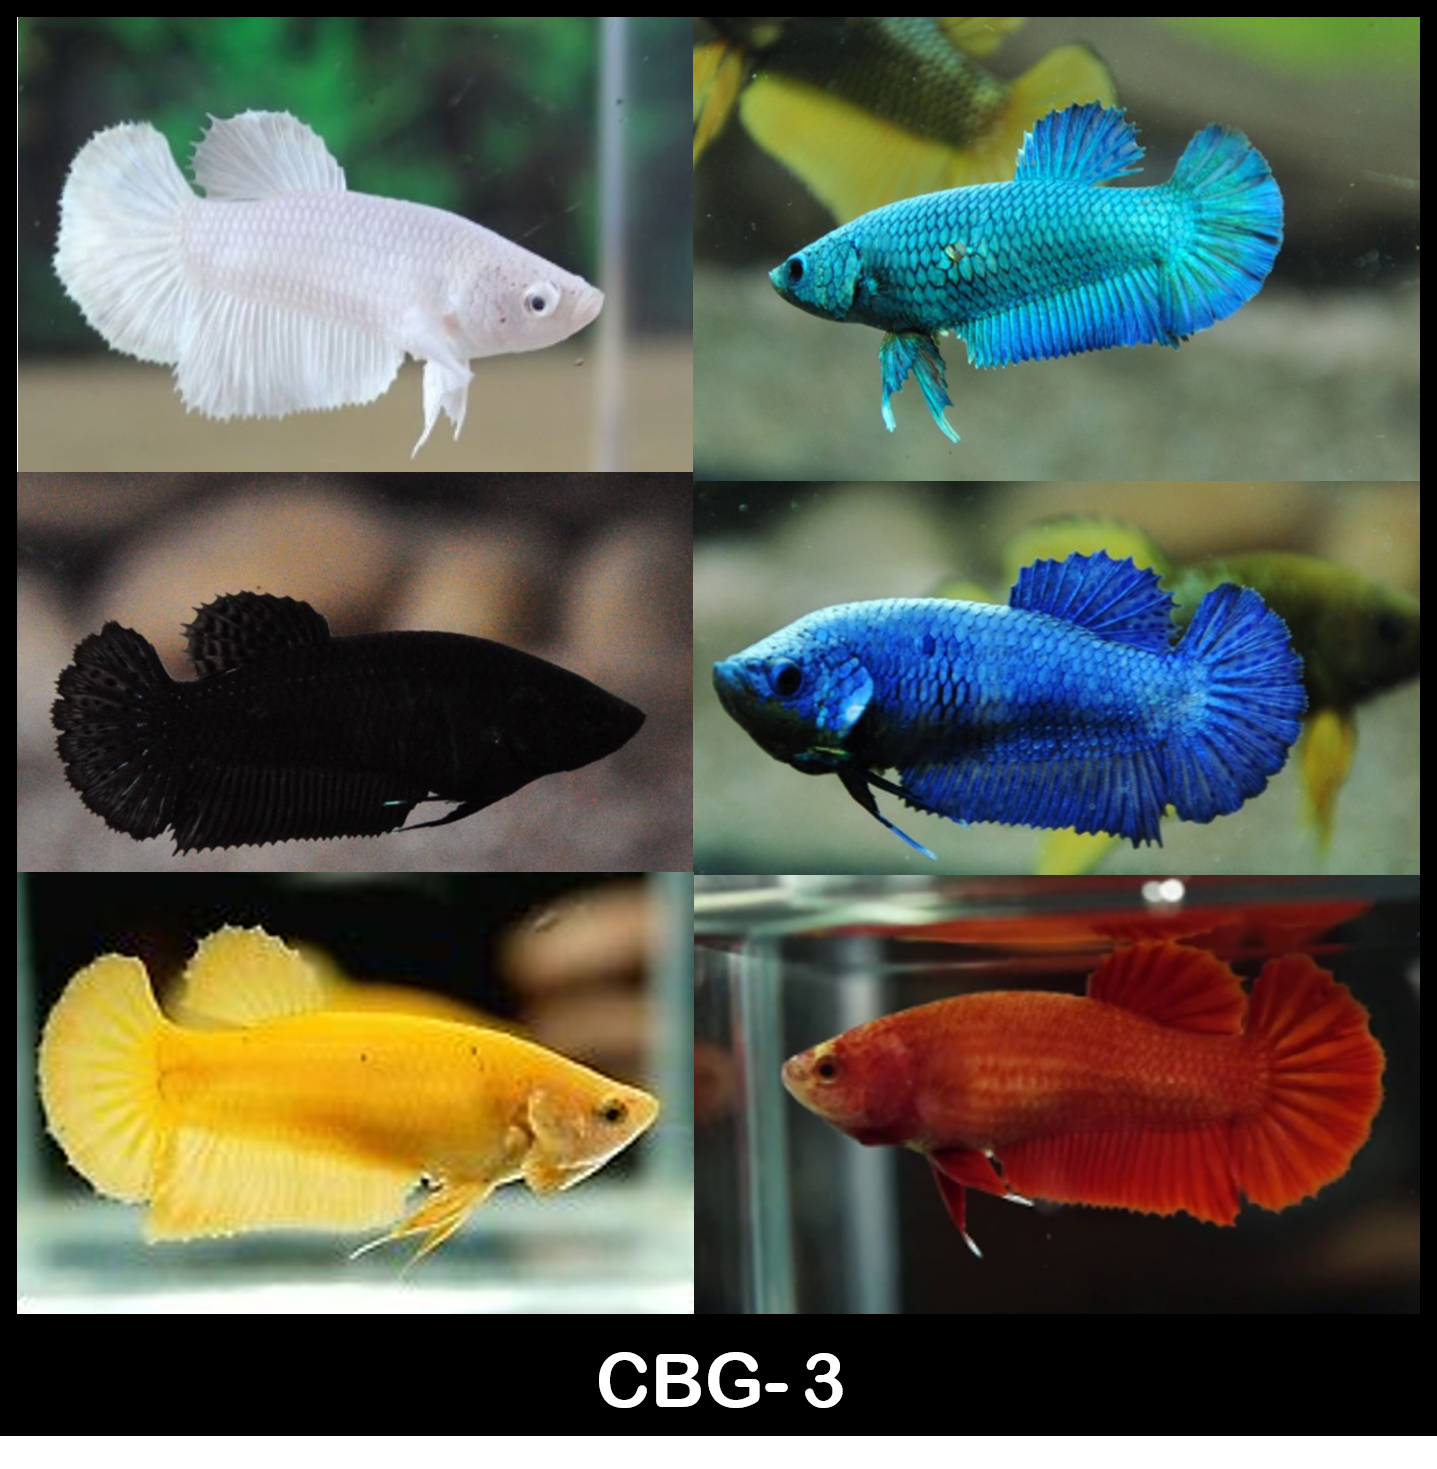 Mixed solid colors Plakat Female Betta 1 for $12 Buy 5 Get 1 Free (CBG-3)